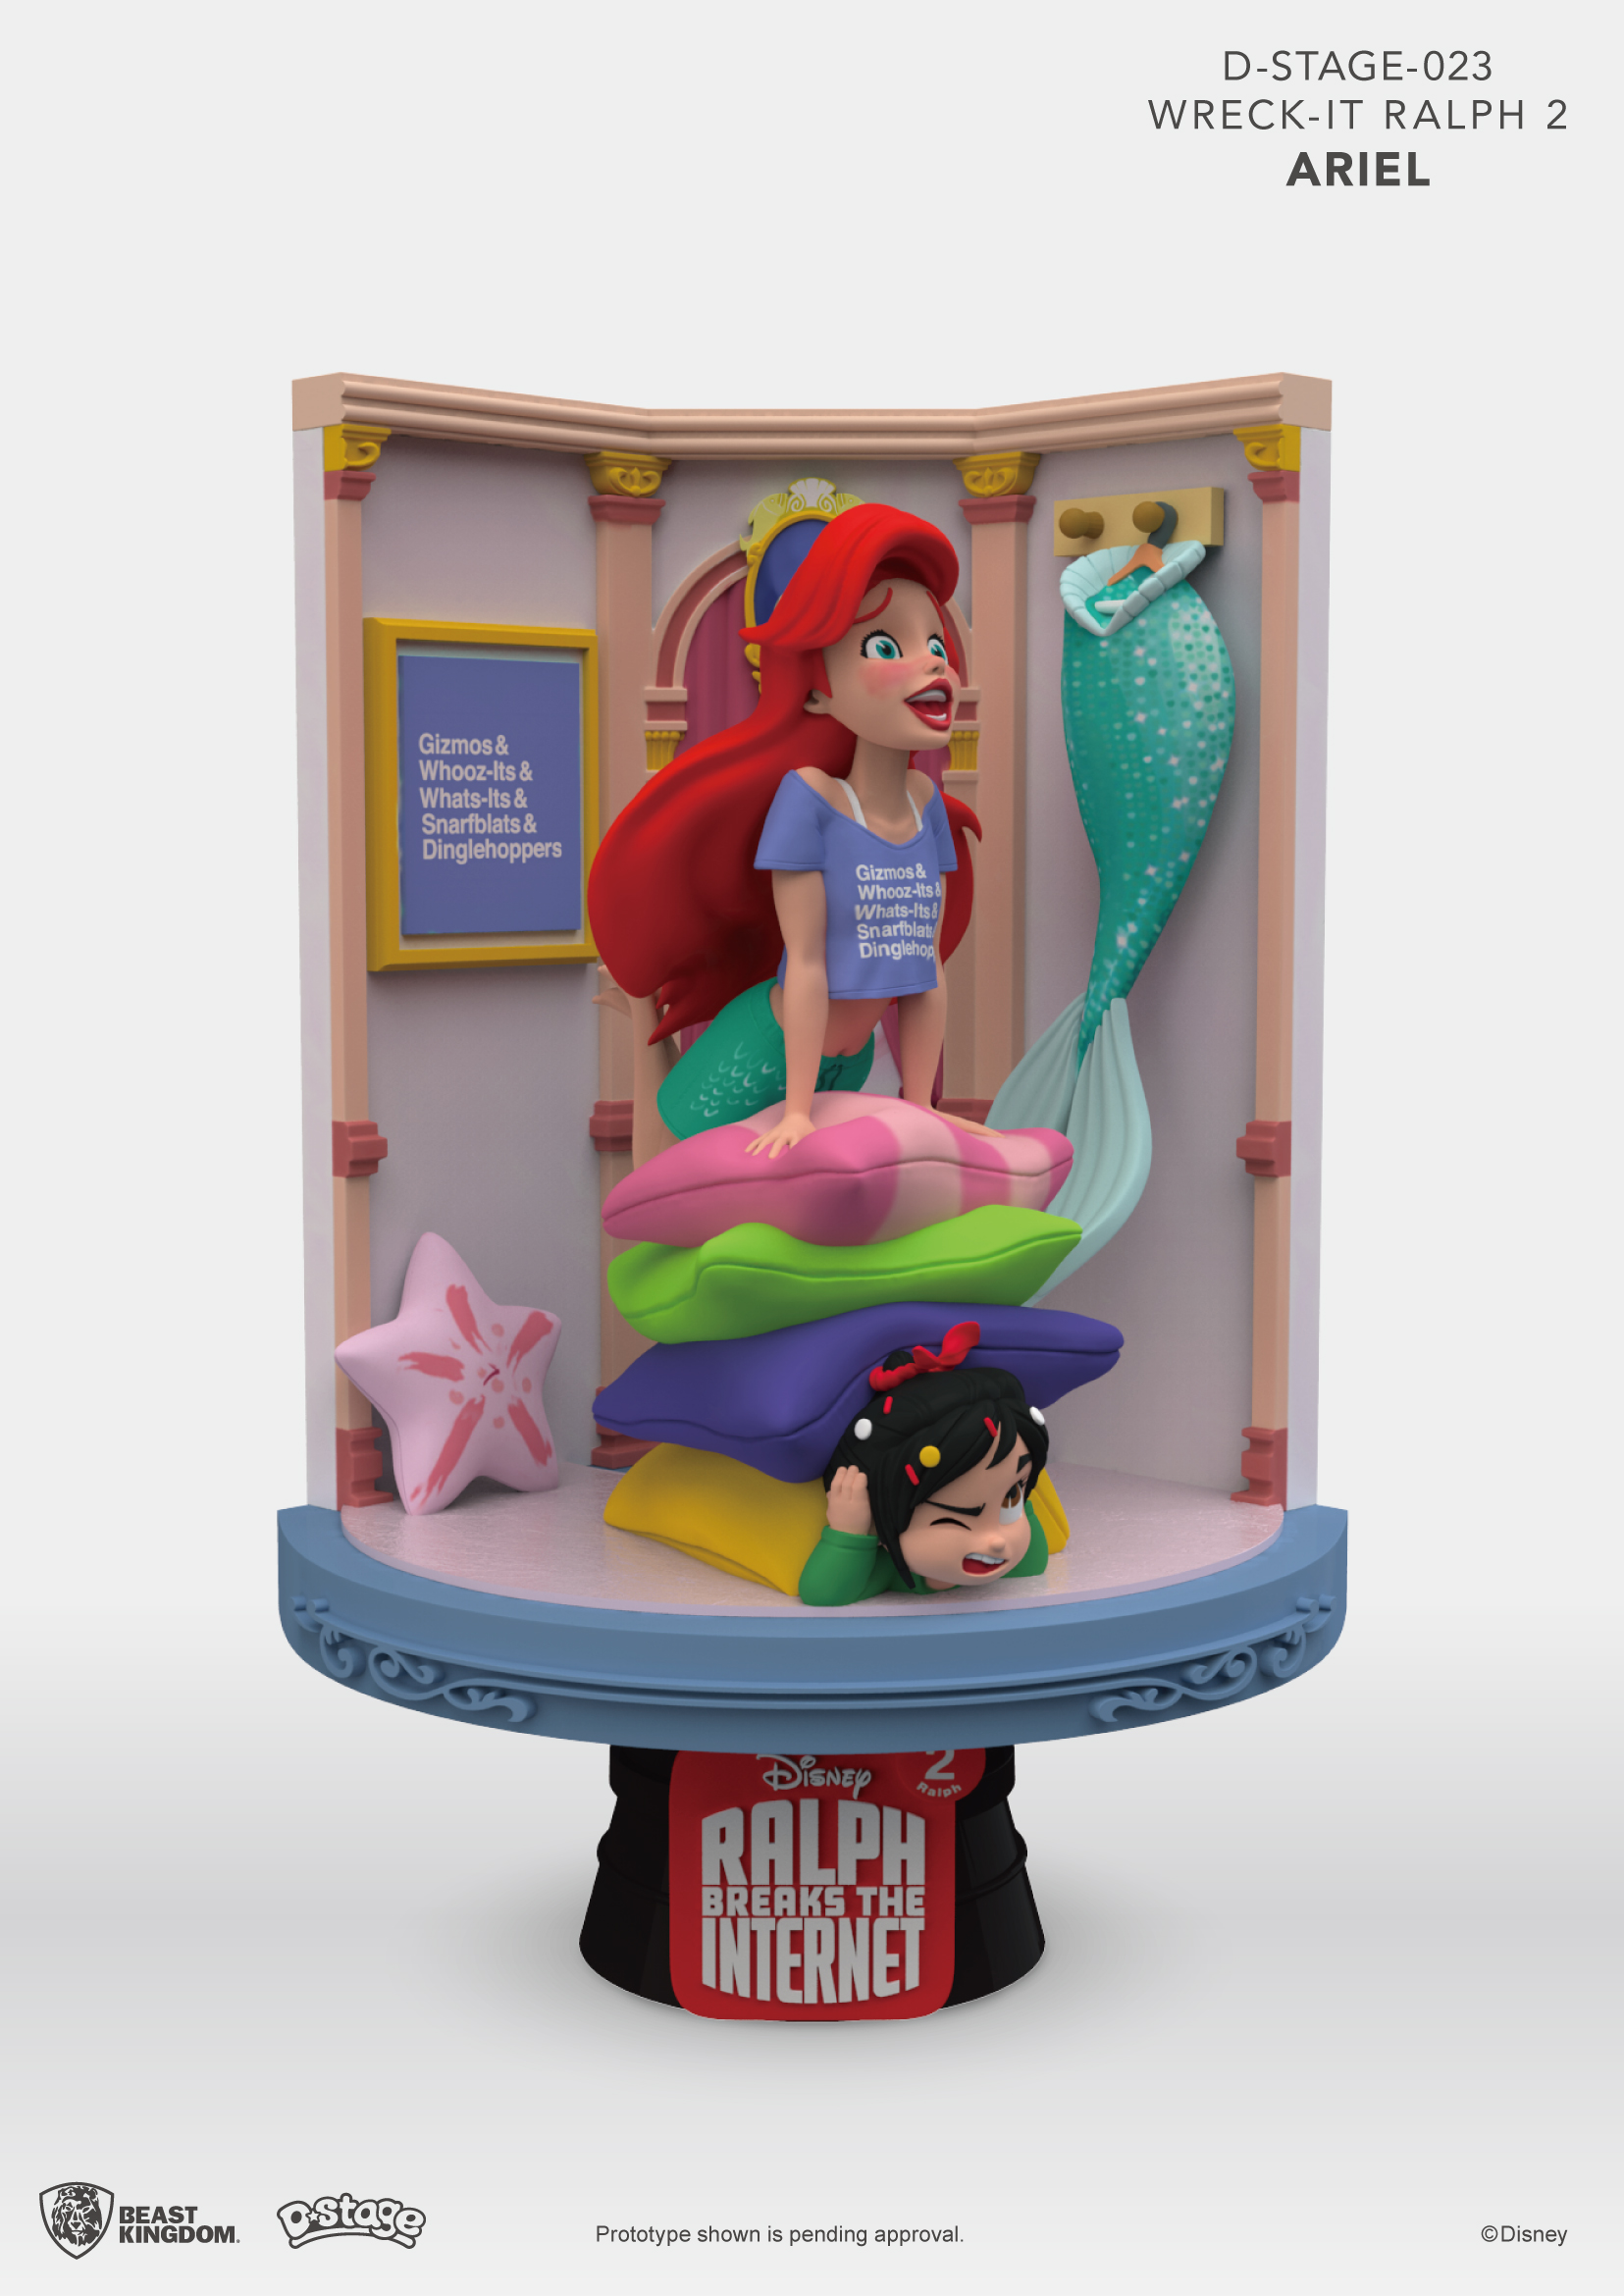 Disney Princesses On Display In Previews Exclusive Ralph Breaks The Internet D Stage Statues Previews World